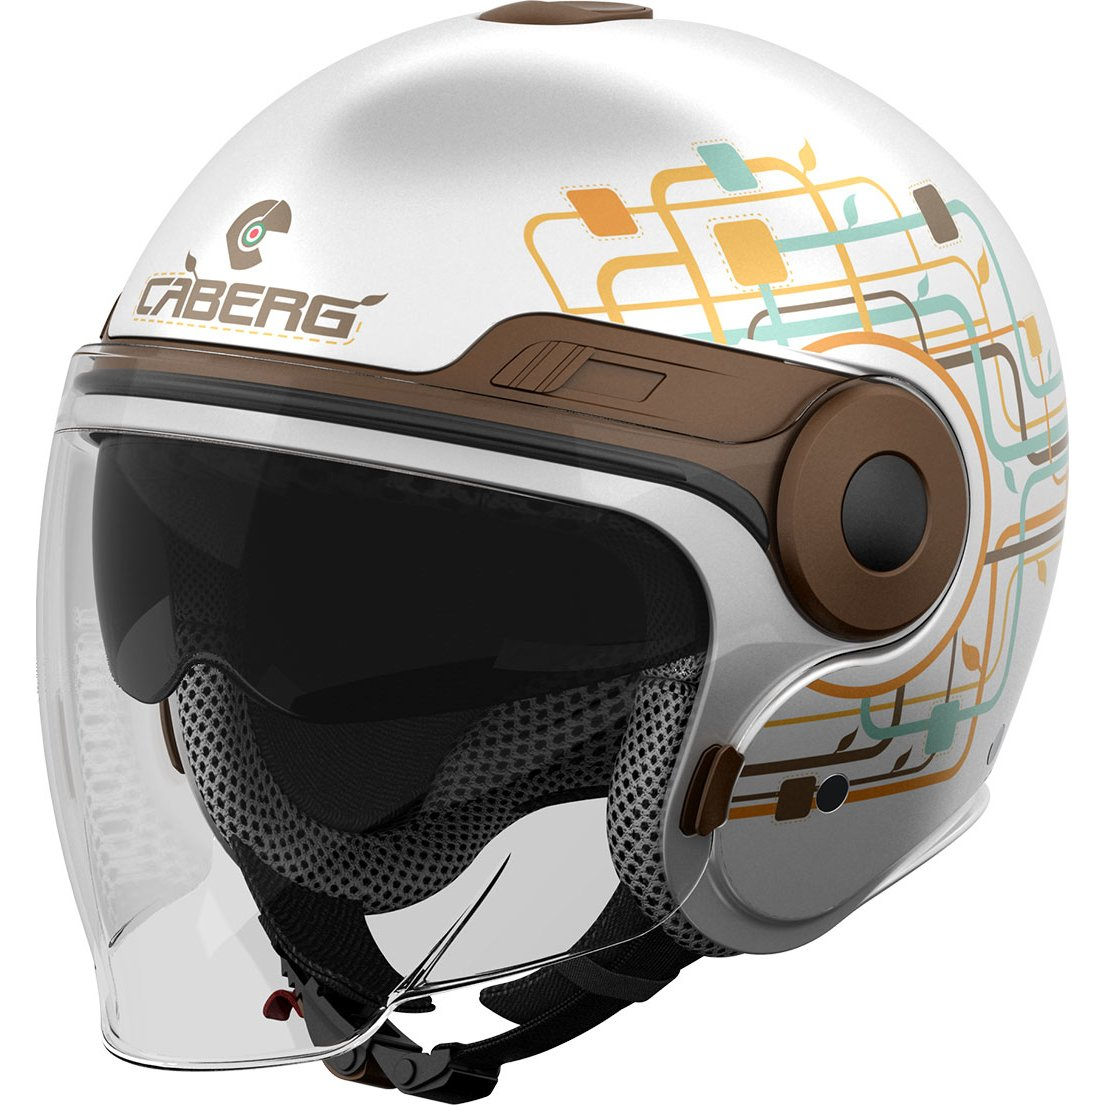 Caberg Uptown Lady Open Face Motorcycle Helmet S White Brown: Uptown: Amazon.es: Deportes y aire libre